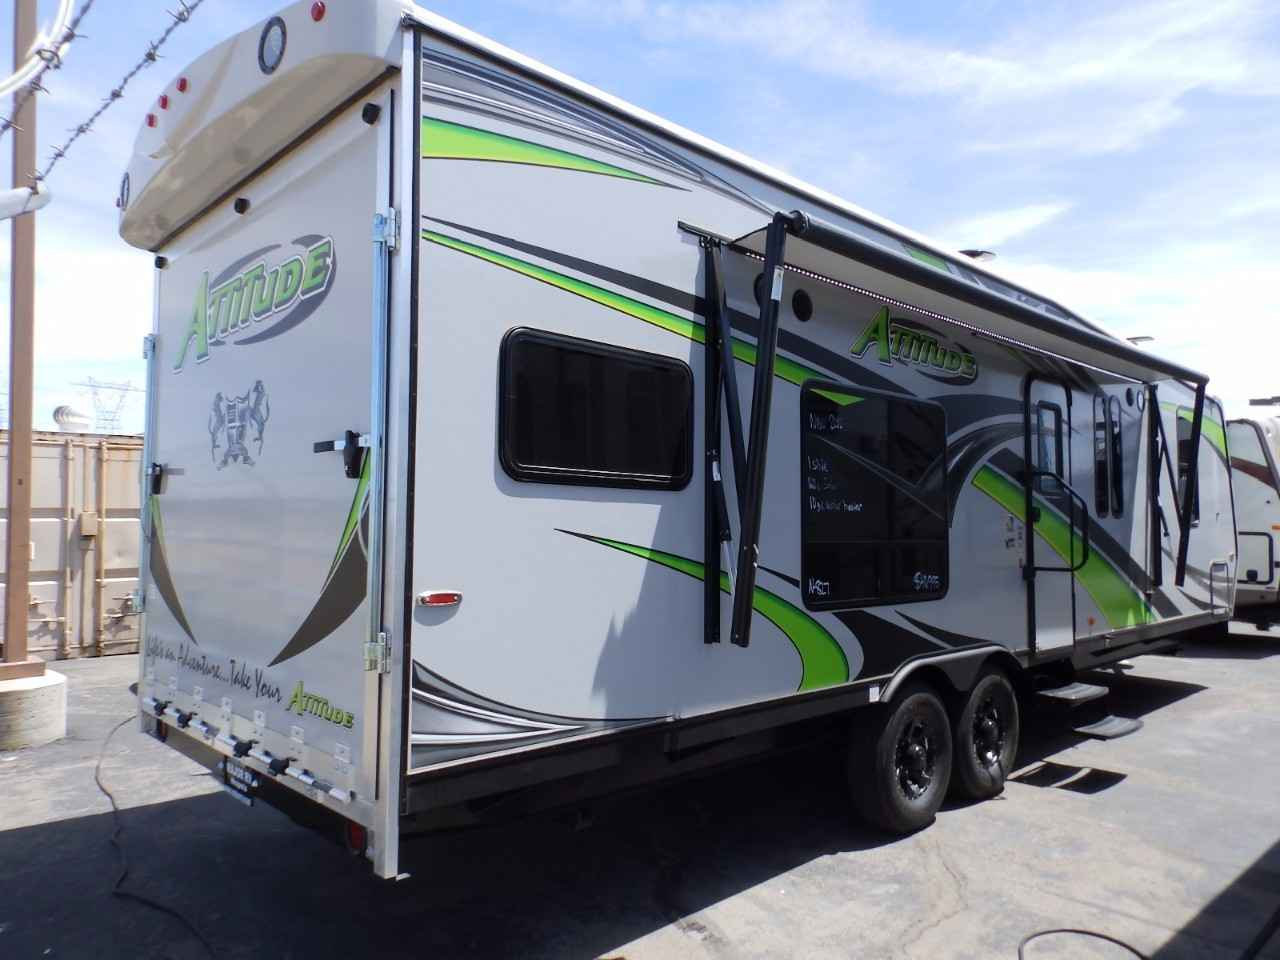 2018 New Eclipse Recreational Vehicles Attitude 28ibg 1